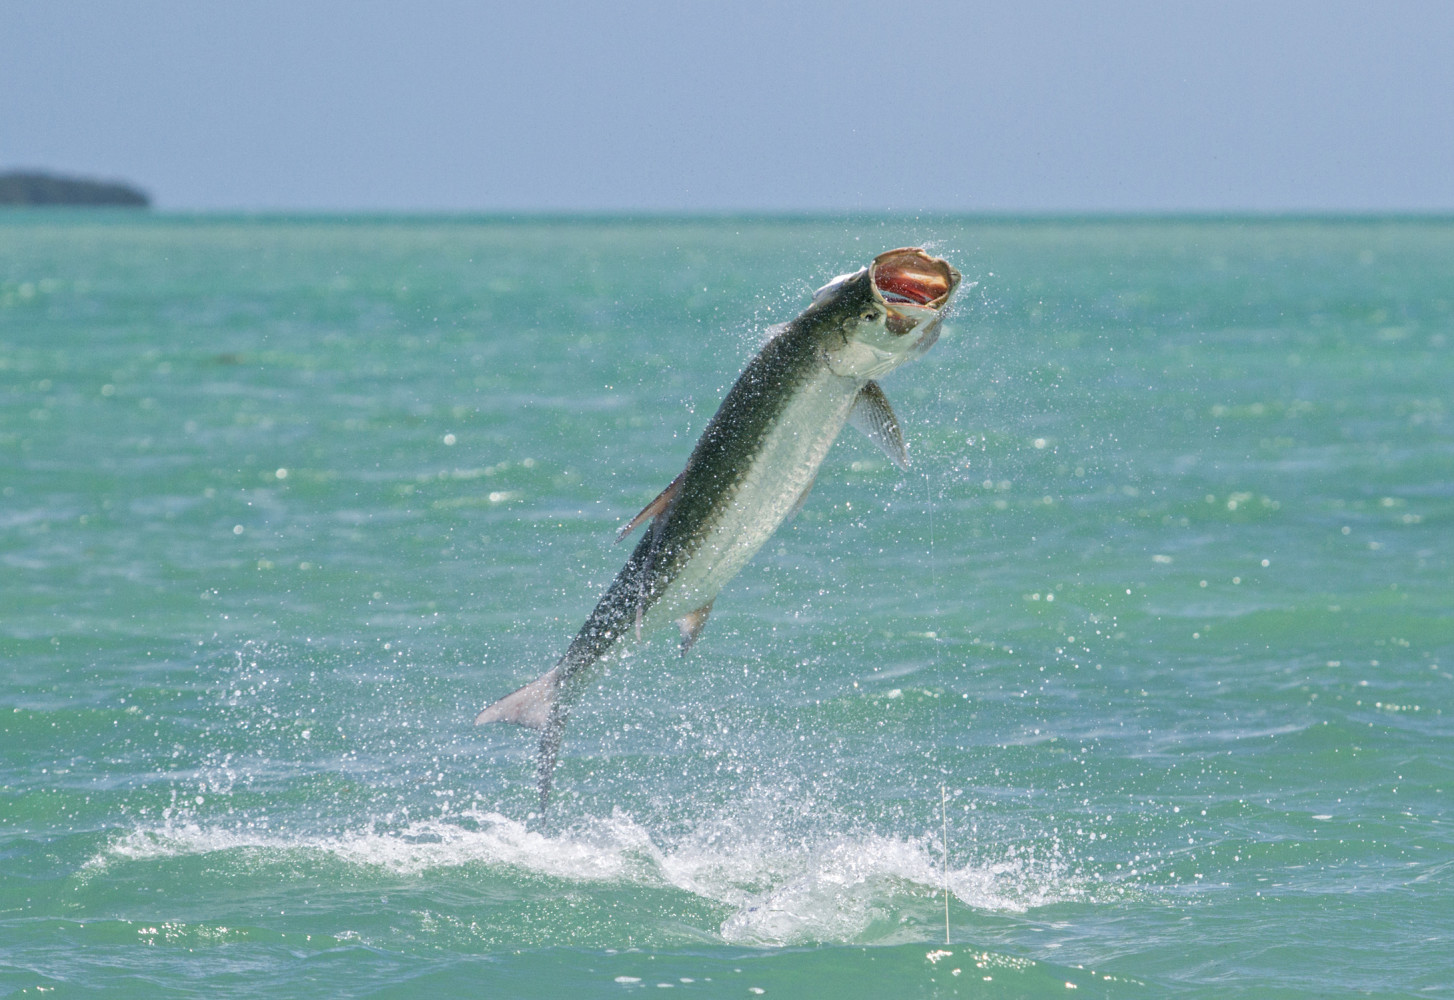 Image of a tarpon jumping out of the water on an Outgoing Angling fishing adventure in the Florida Keys.